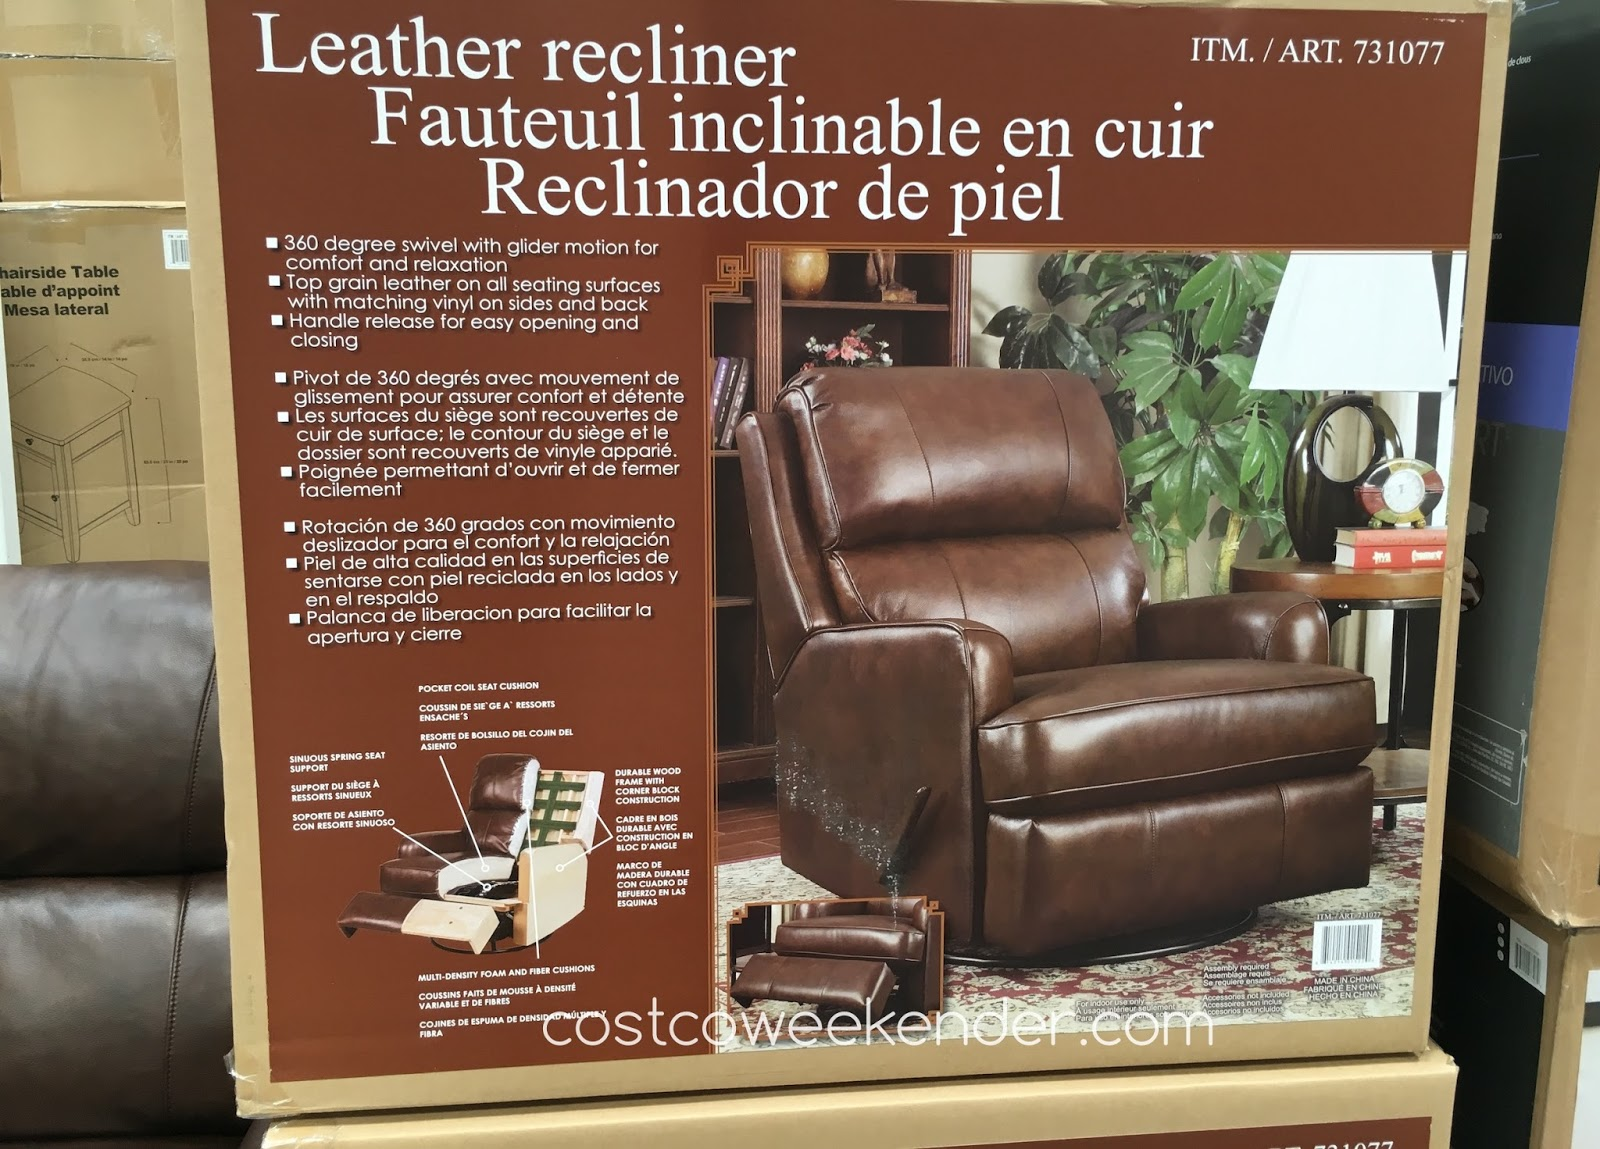 Relaxing in front of the TV is now more comfortable on the Synergy Leather Recliner & Synergy Leather Recliner Chair | Costco Weekender islam-shia.org